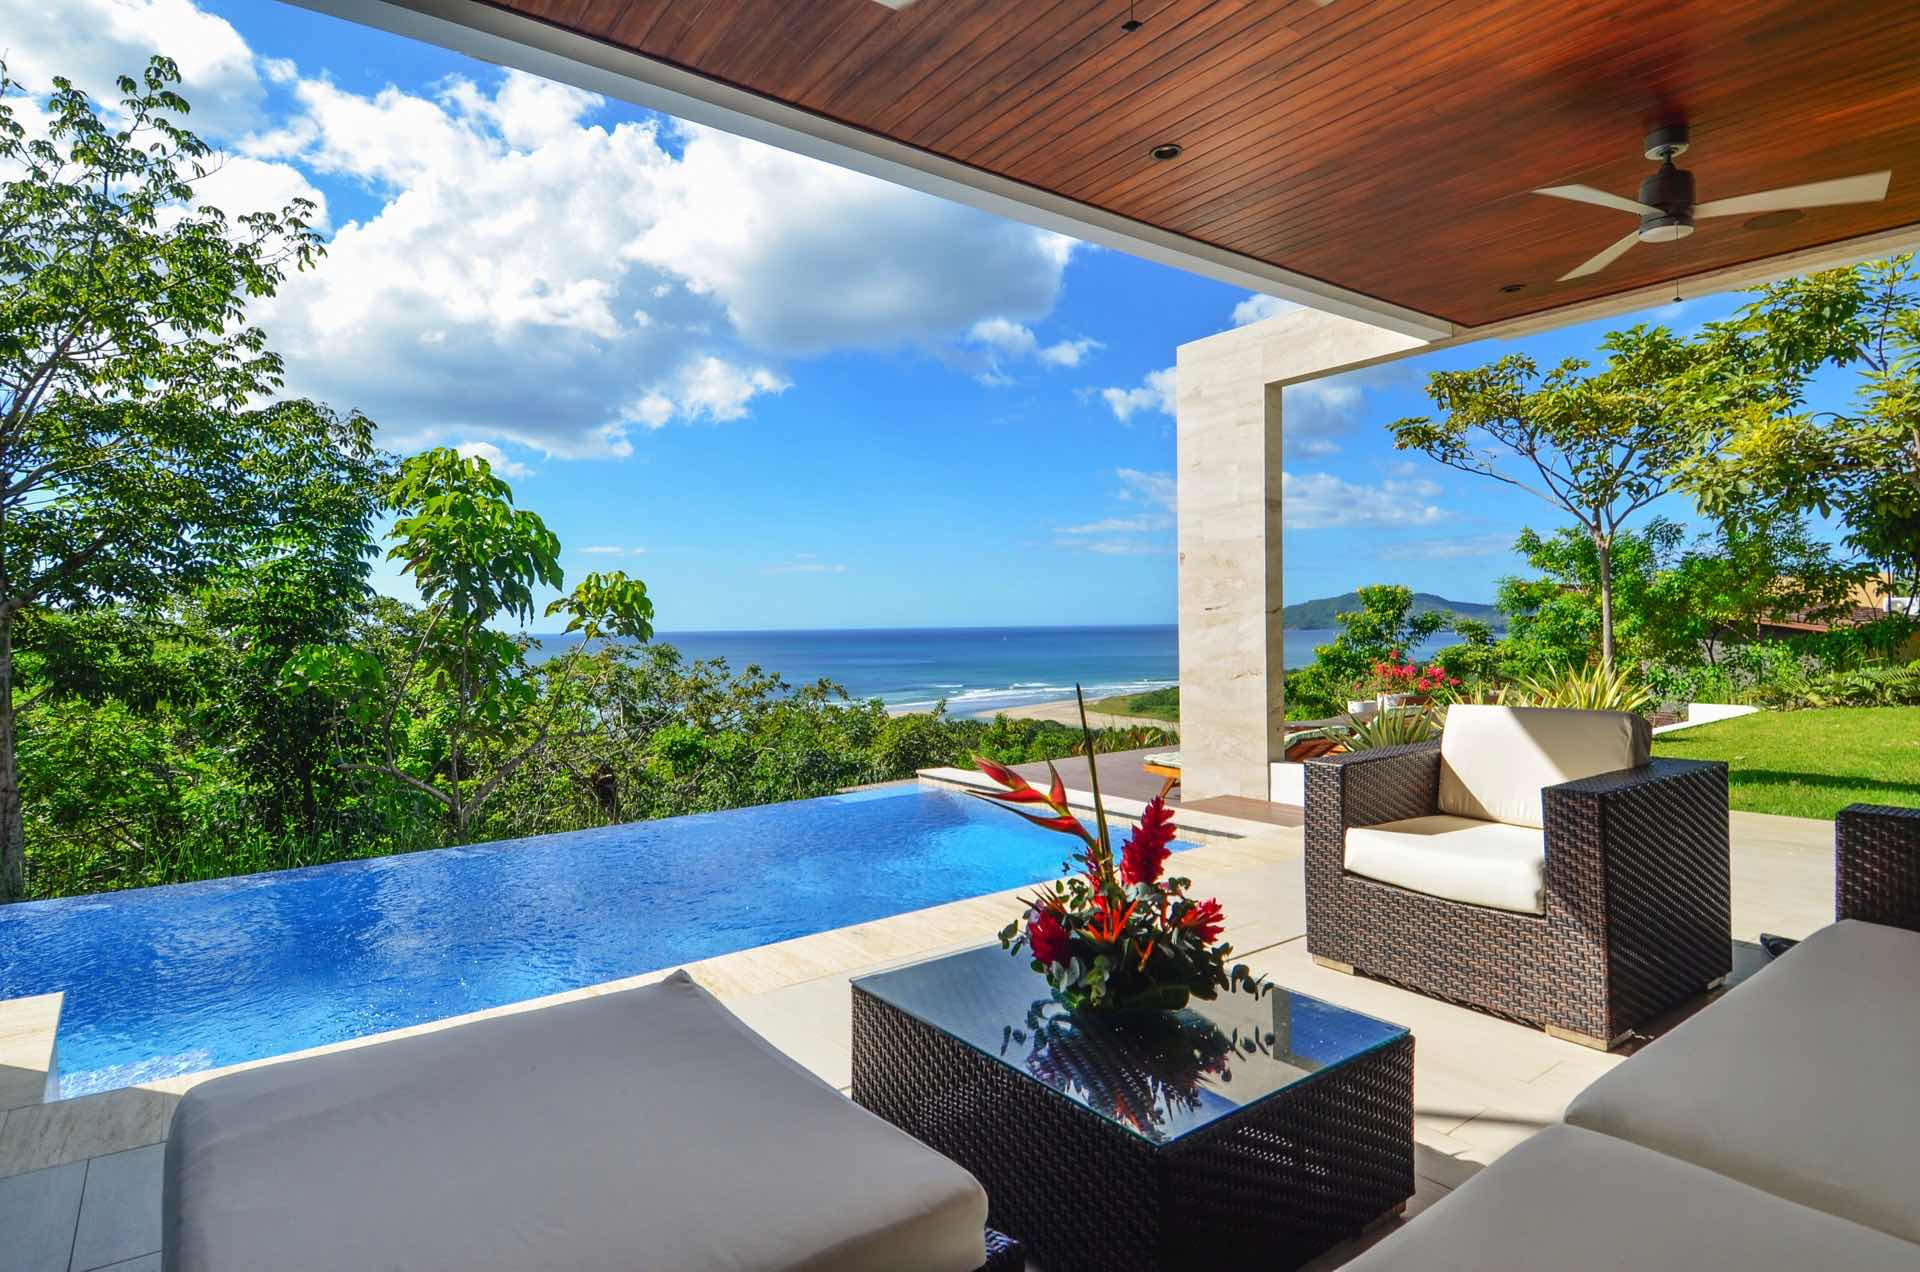 Lomas del Mar has one of the best pools in Costa Rica